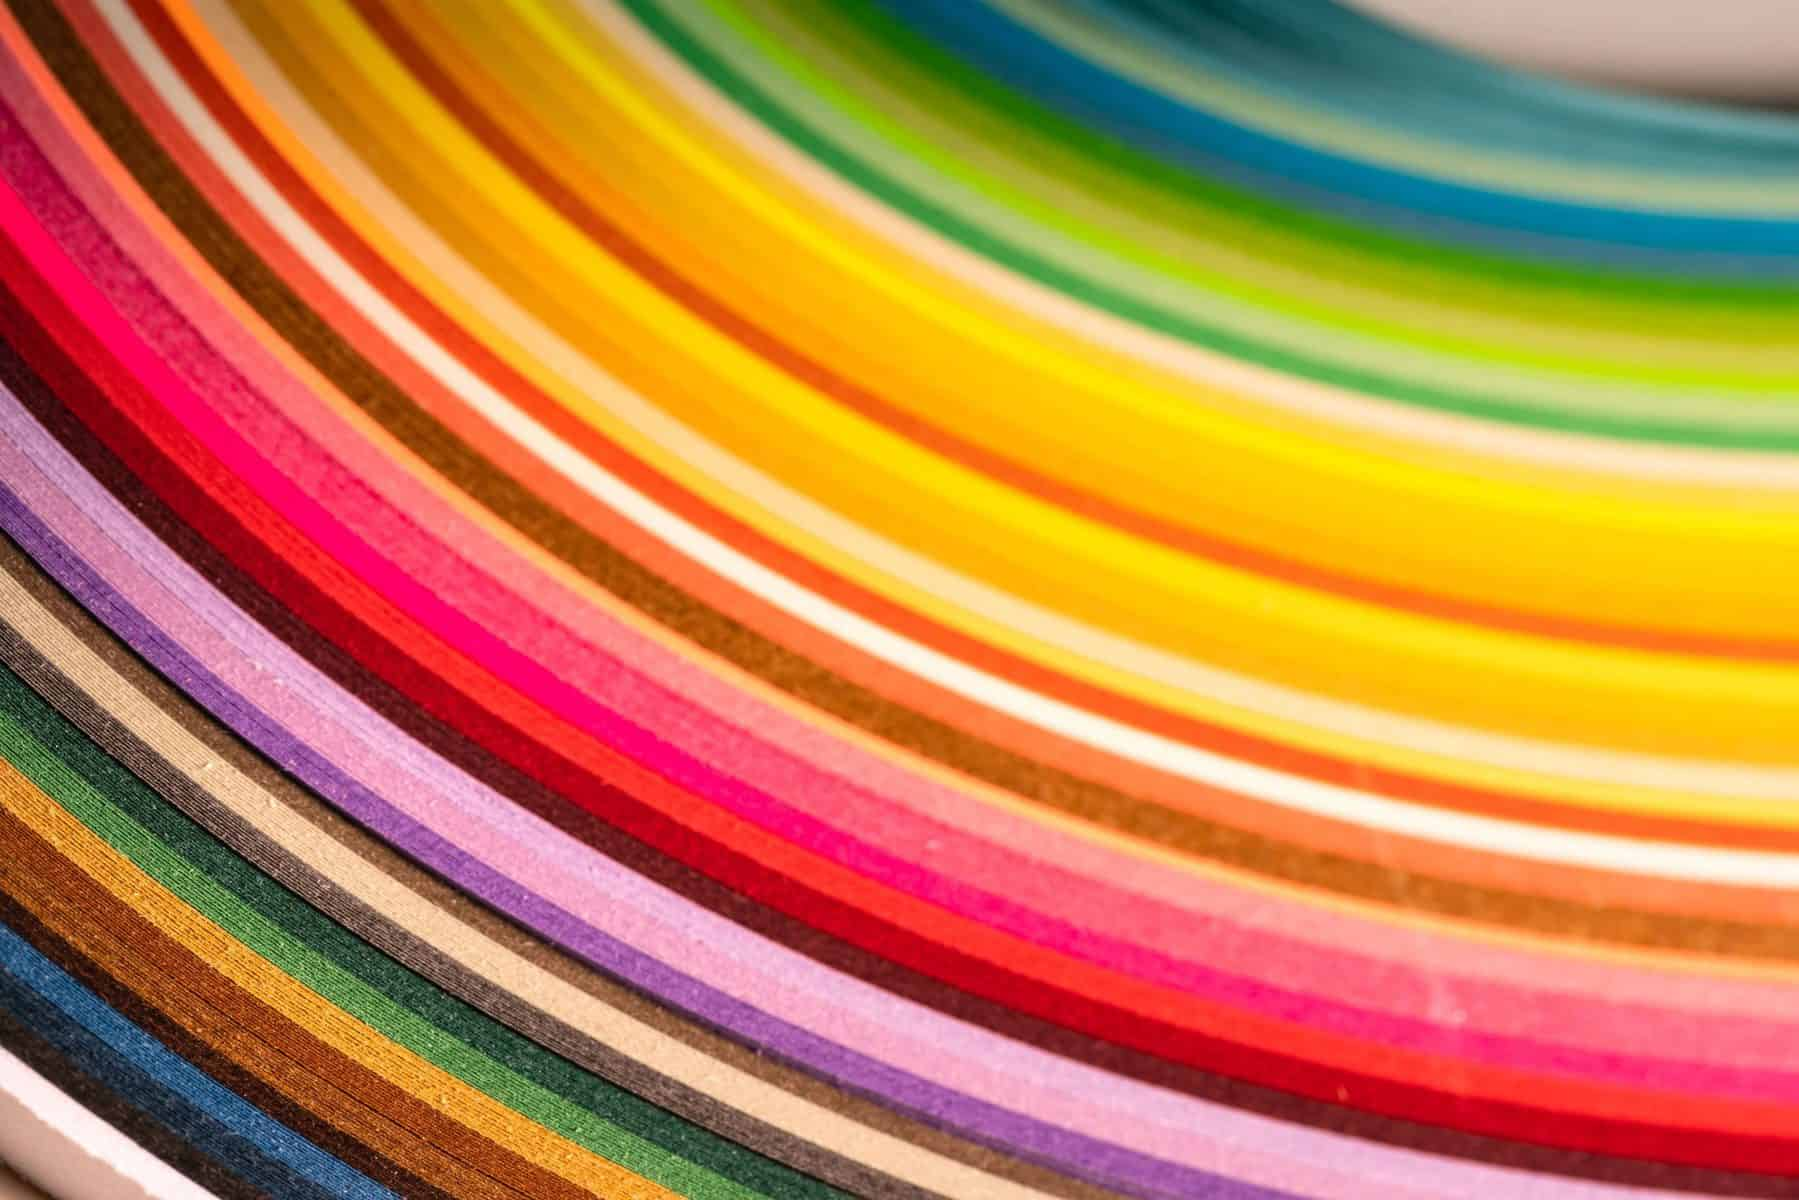 Influence Your Users Through Eye Grabbing Colors